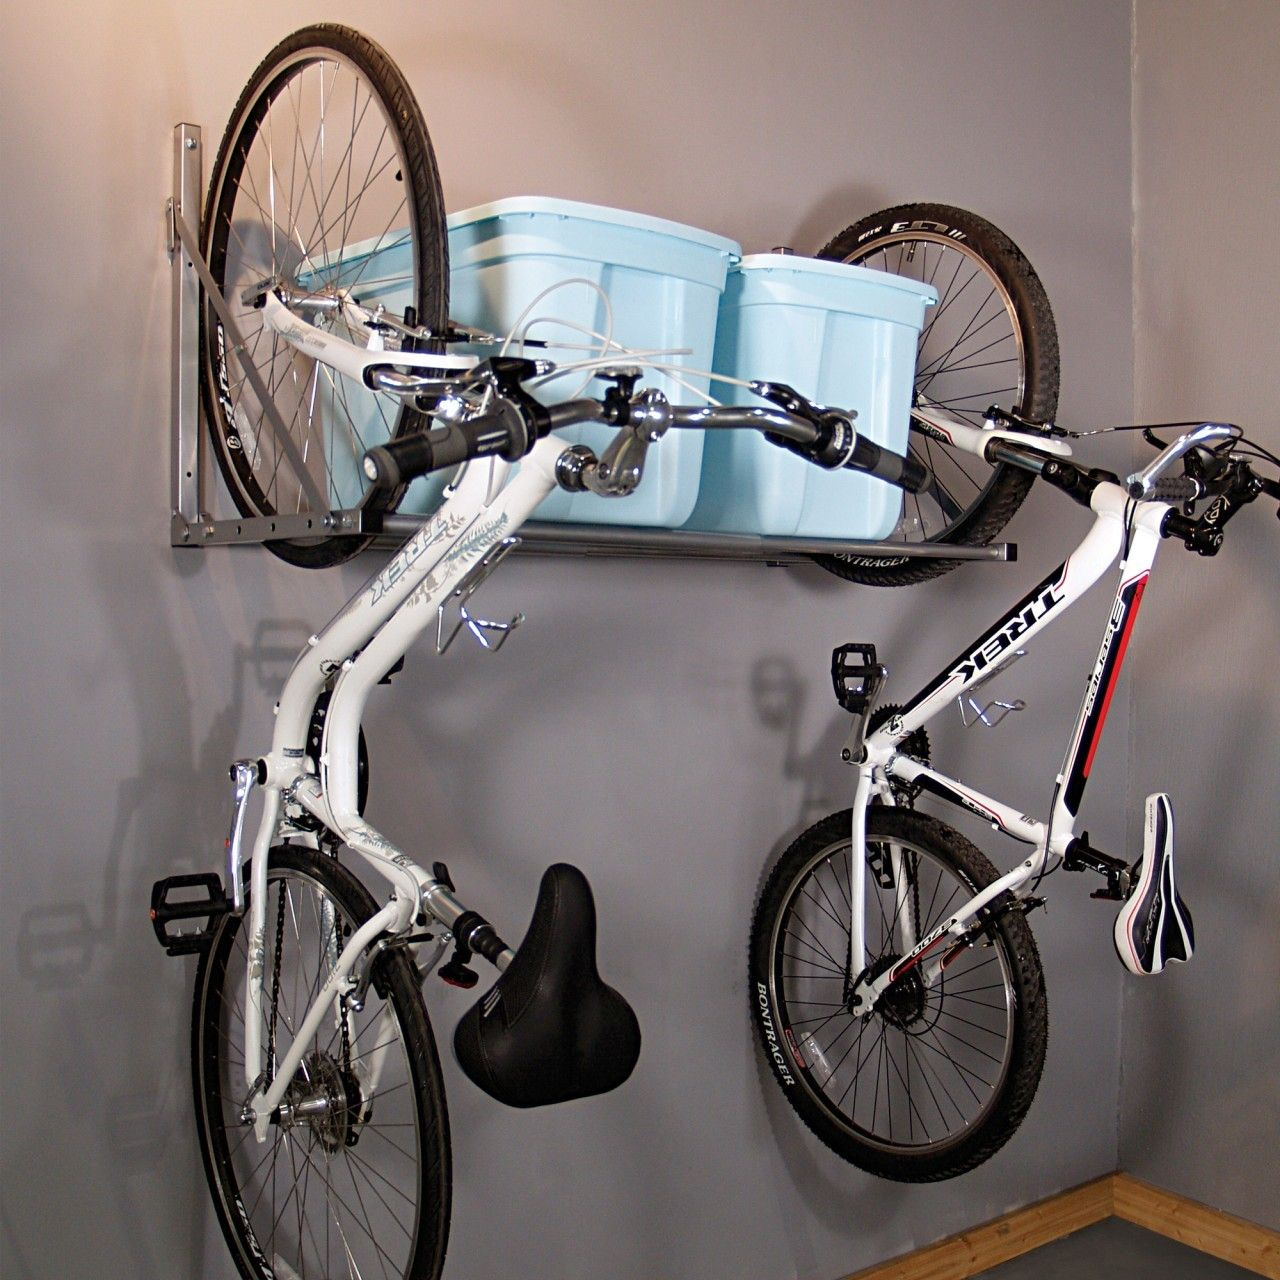 Design Garage Bike Storage Ideas httpworkspacesdesign comgarage bike rack design ideas 1223 improve the look and feel of your garage with an organization diy homemade can be made in flooring ceiling wa